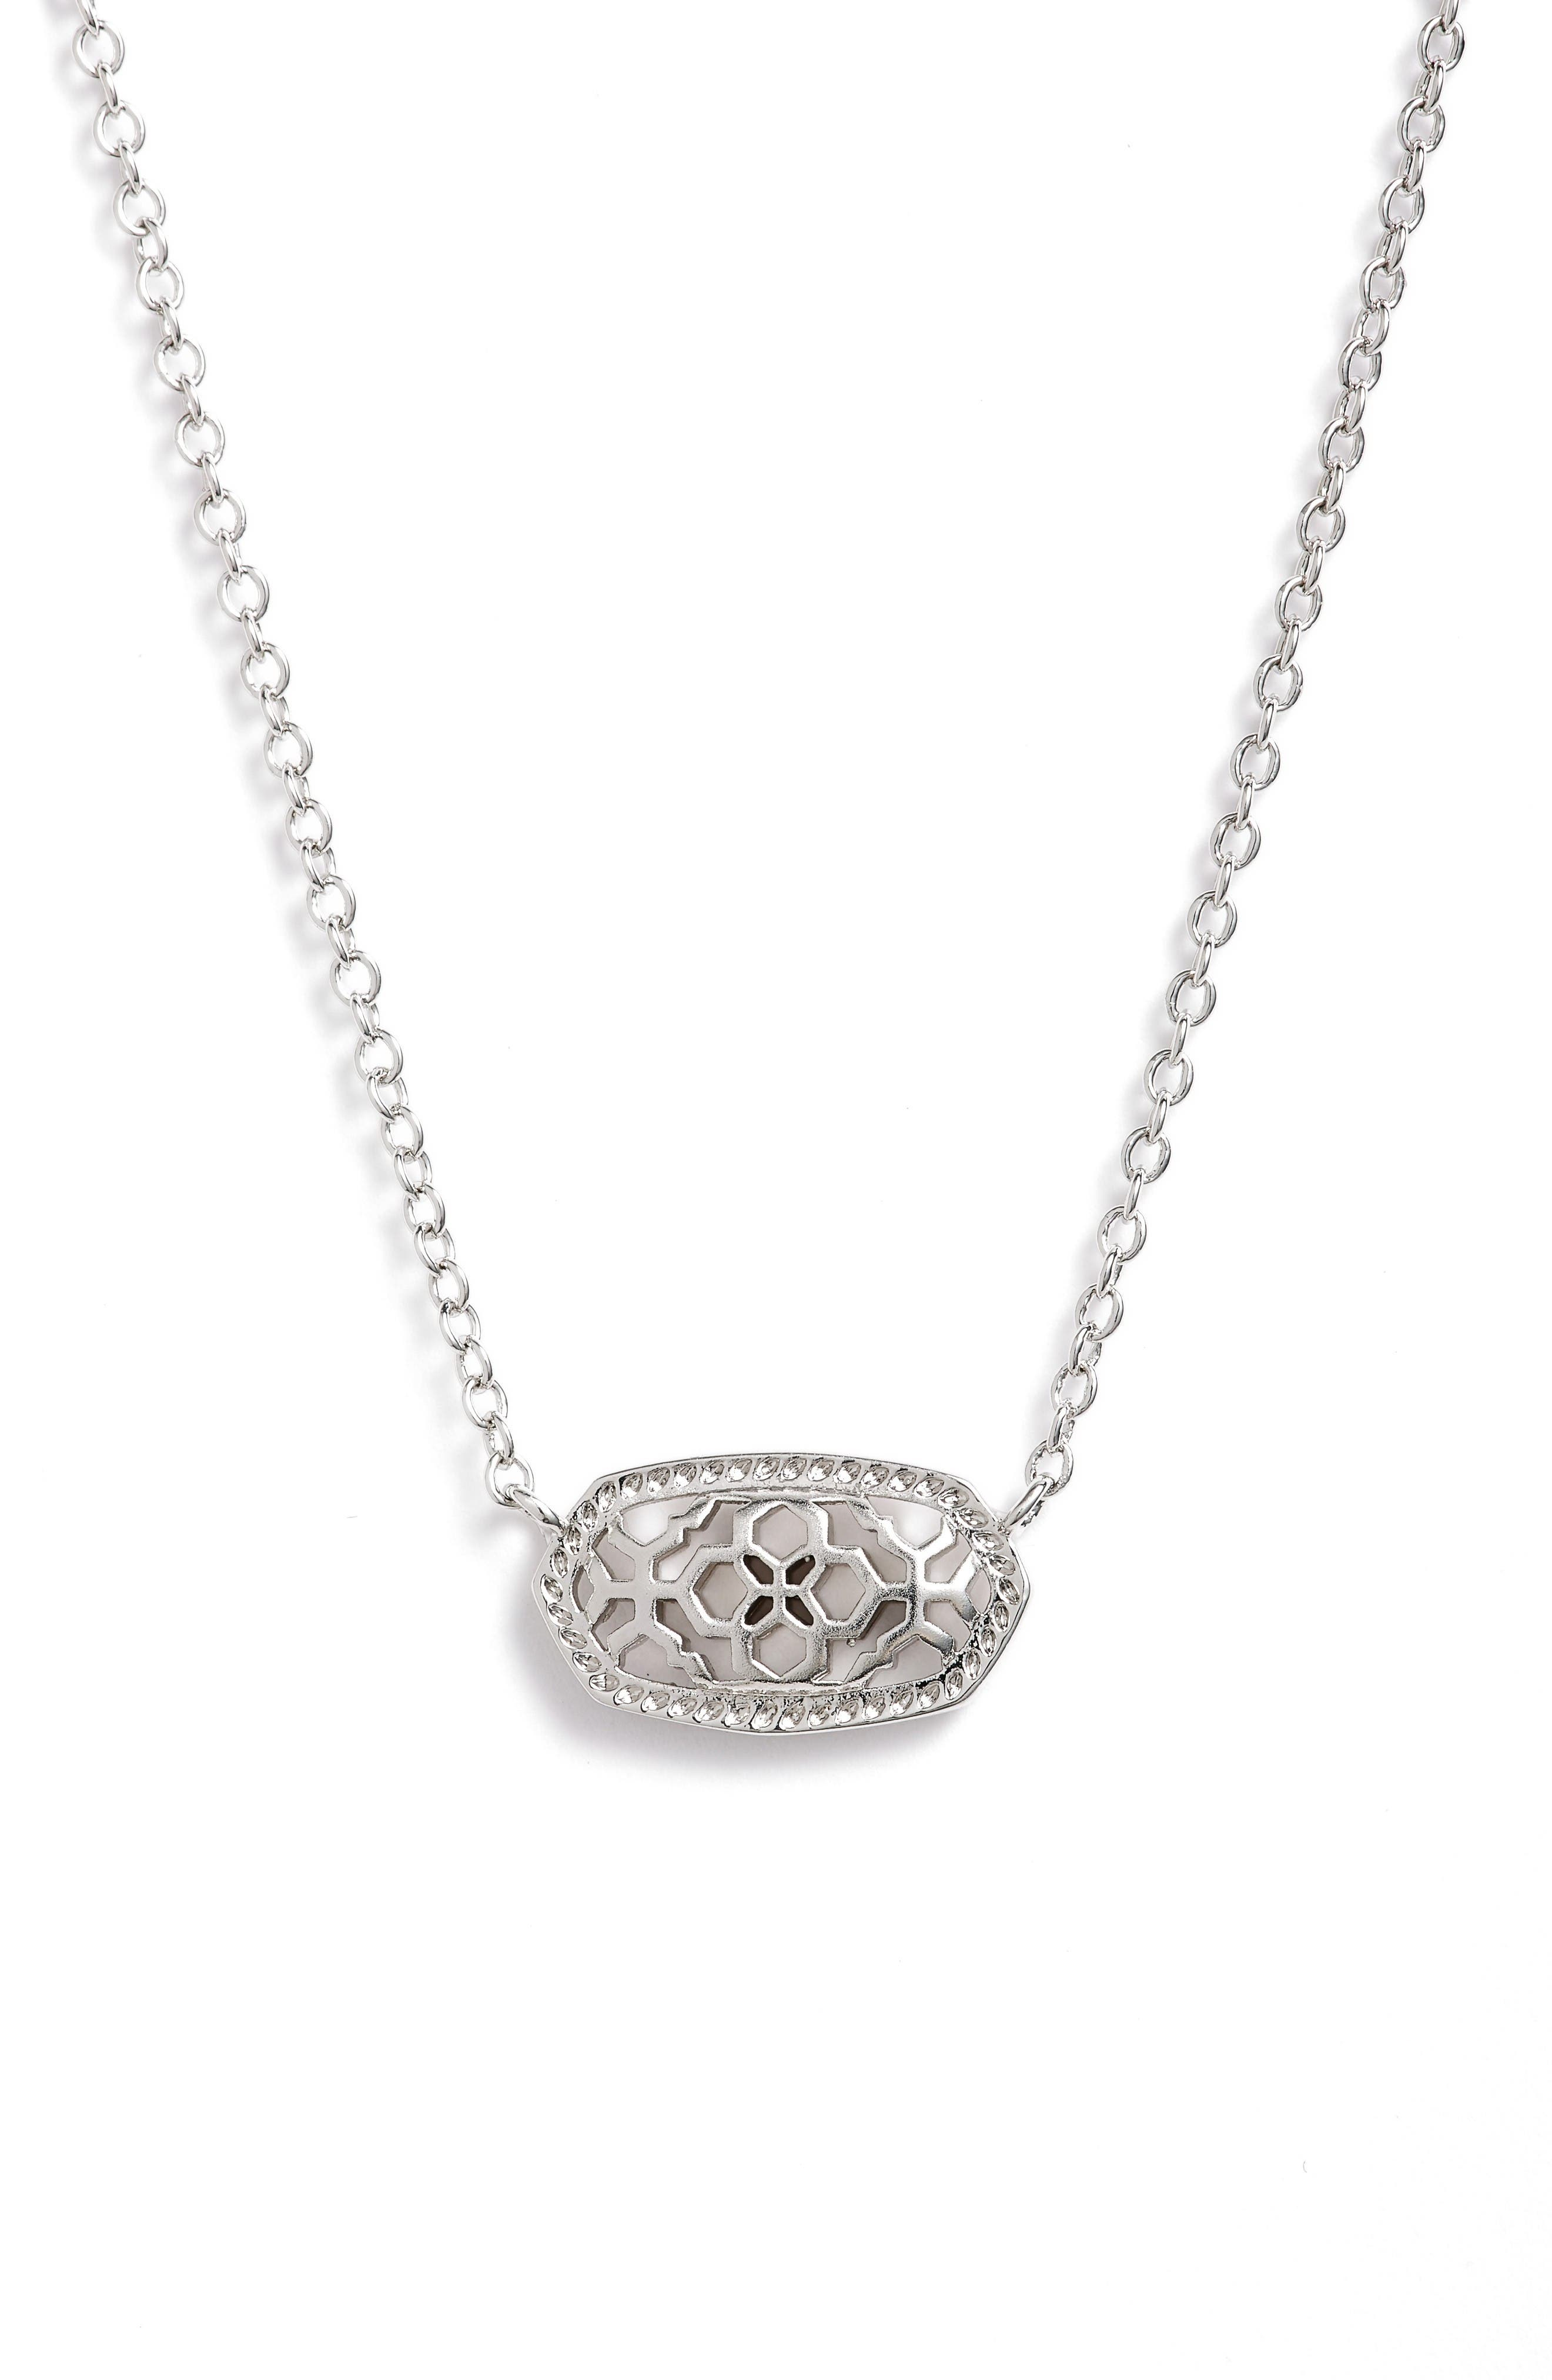 Kendra Scott Elisa Filigree Pendant Necklace